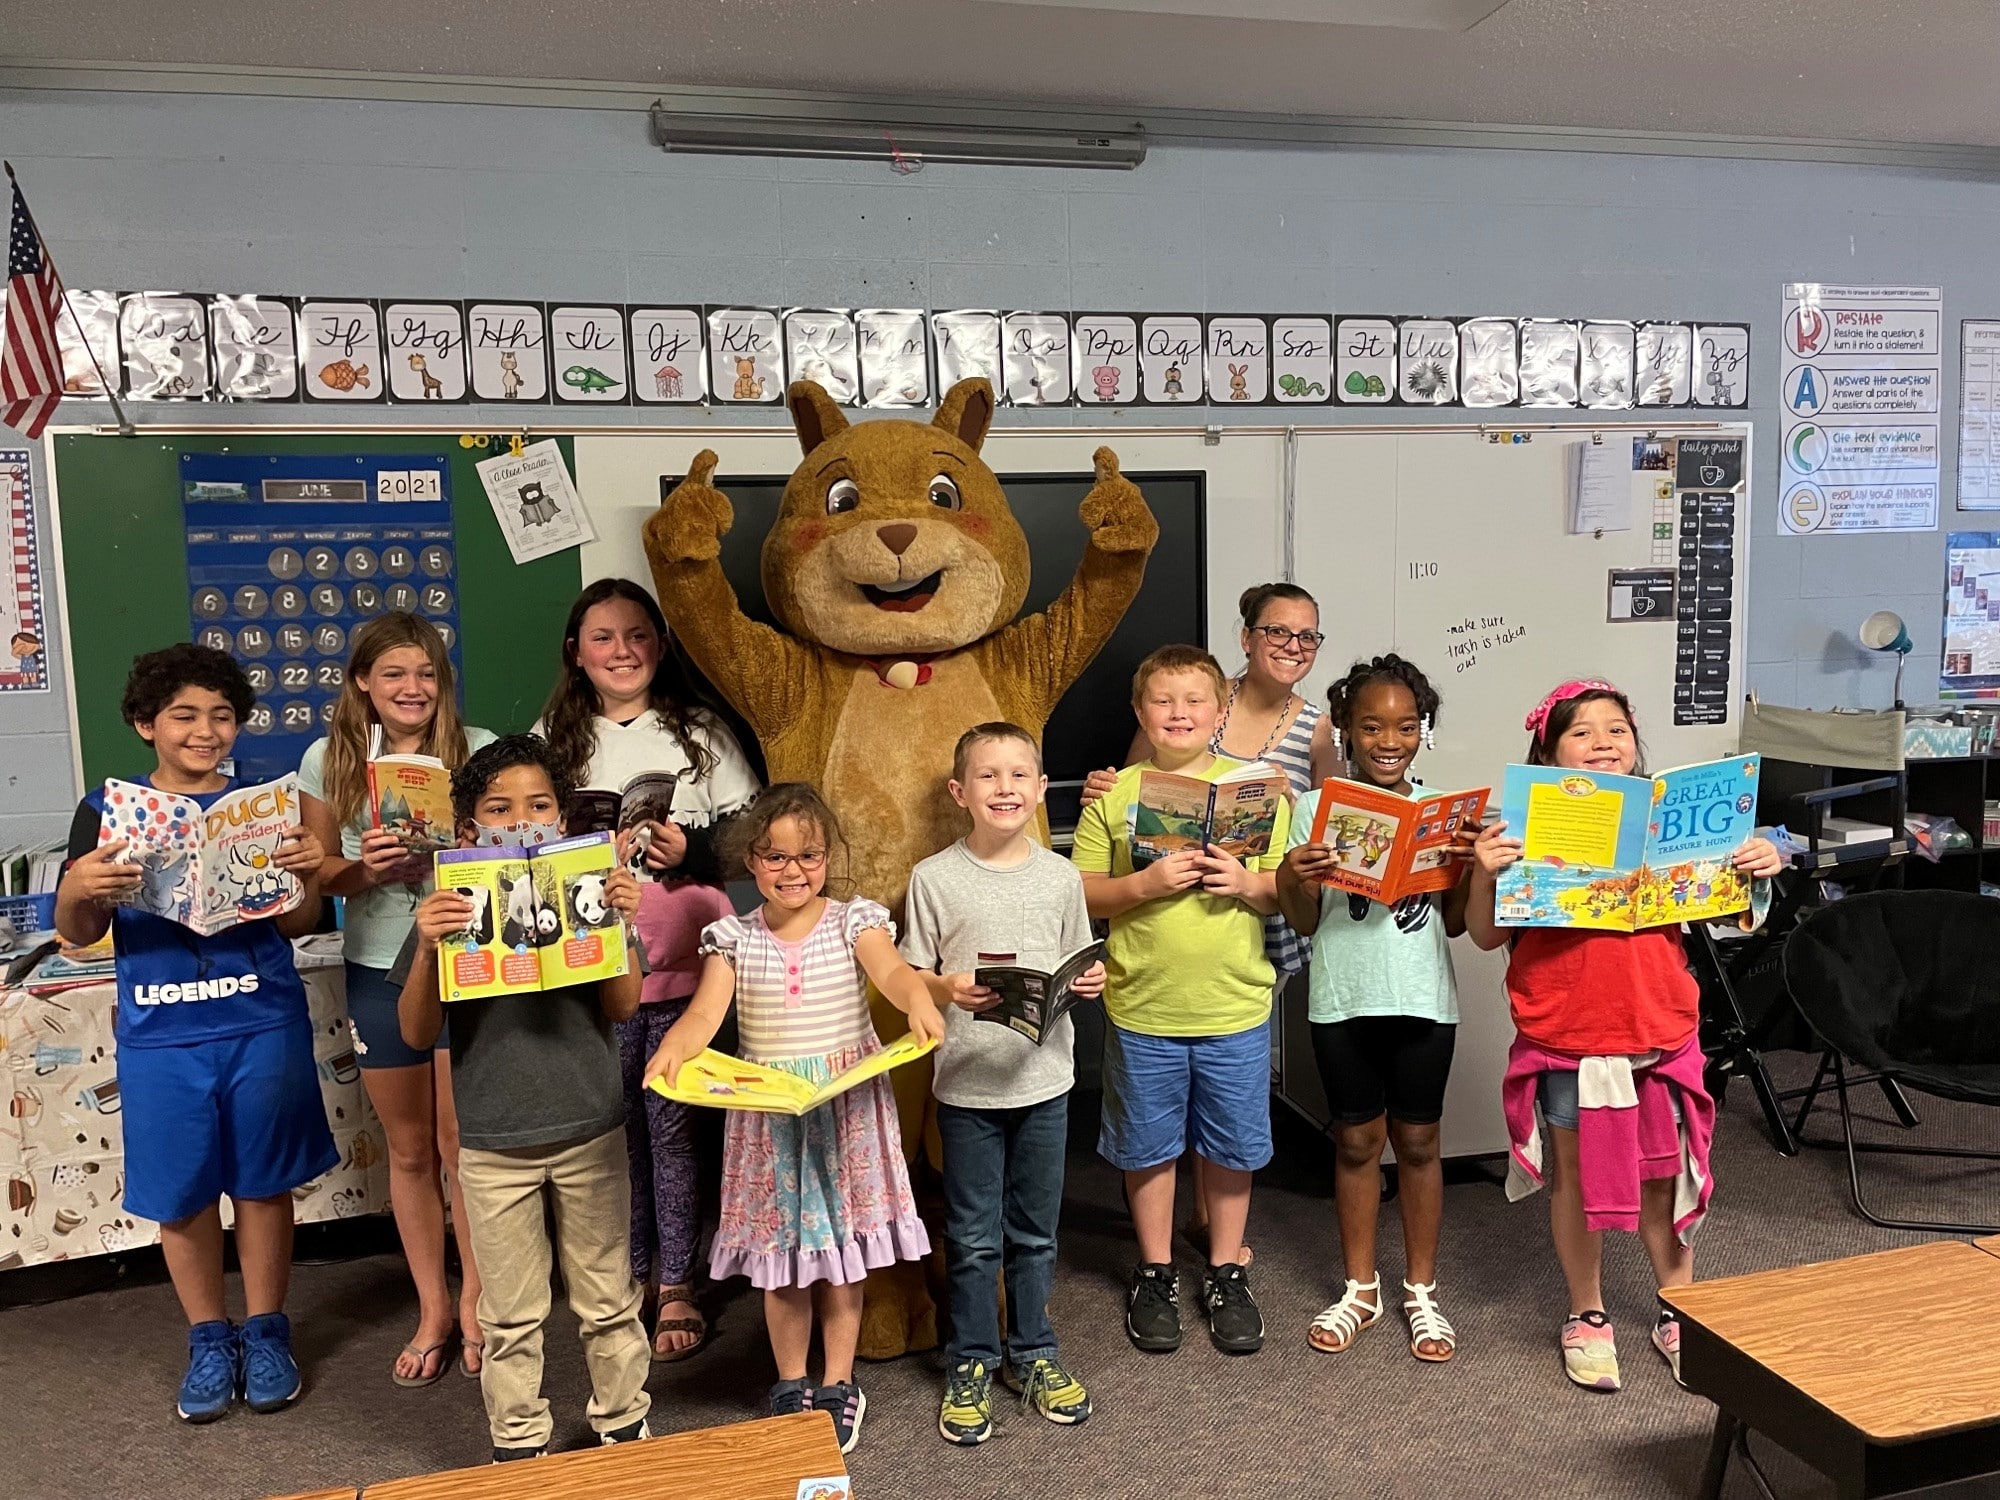 mascot with classroom of kids